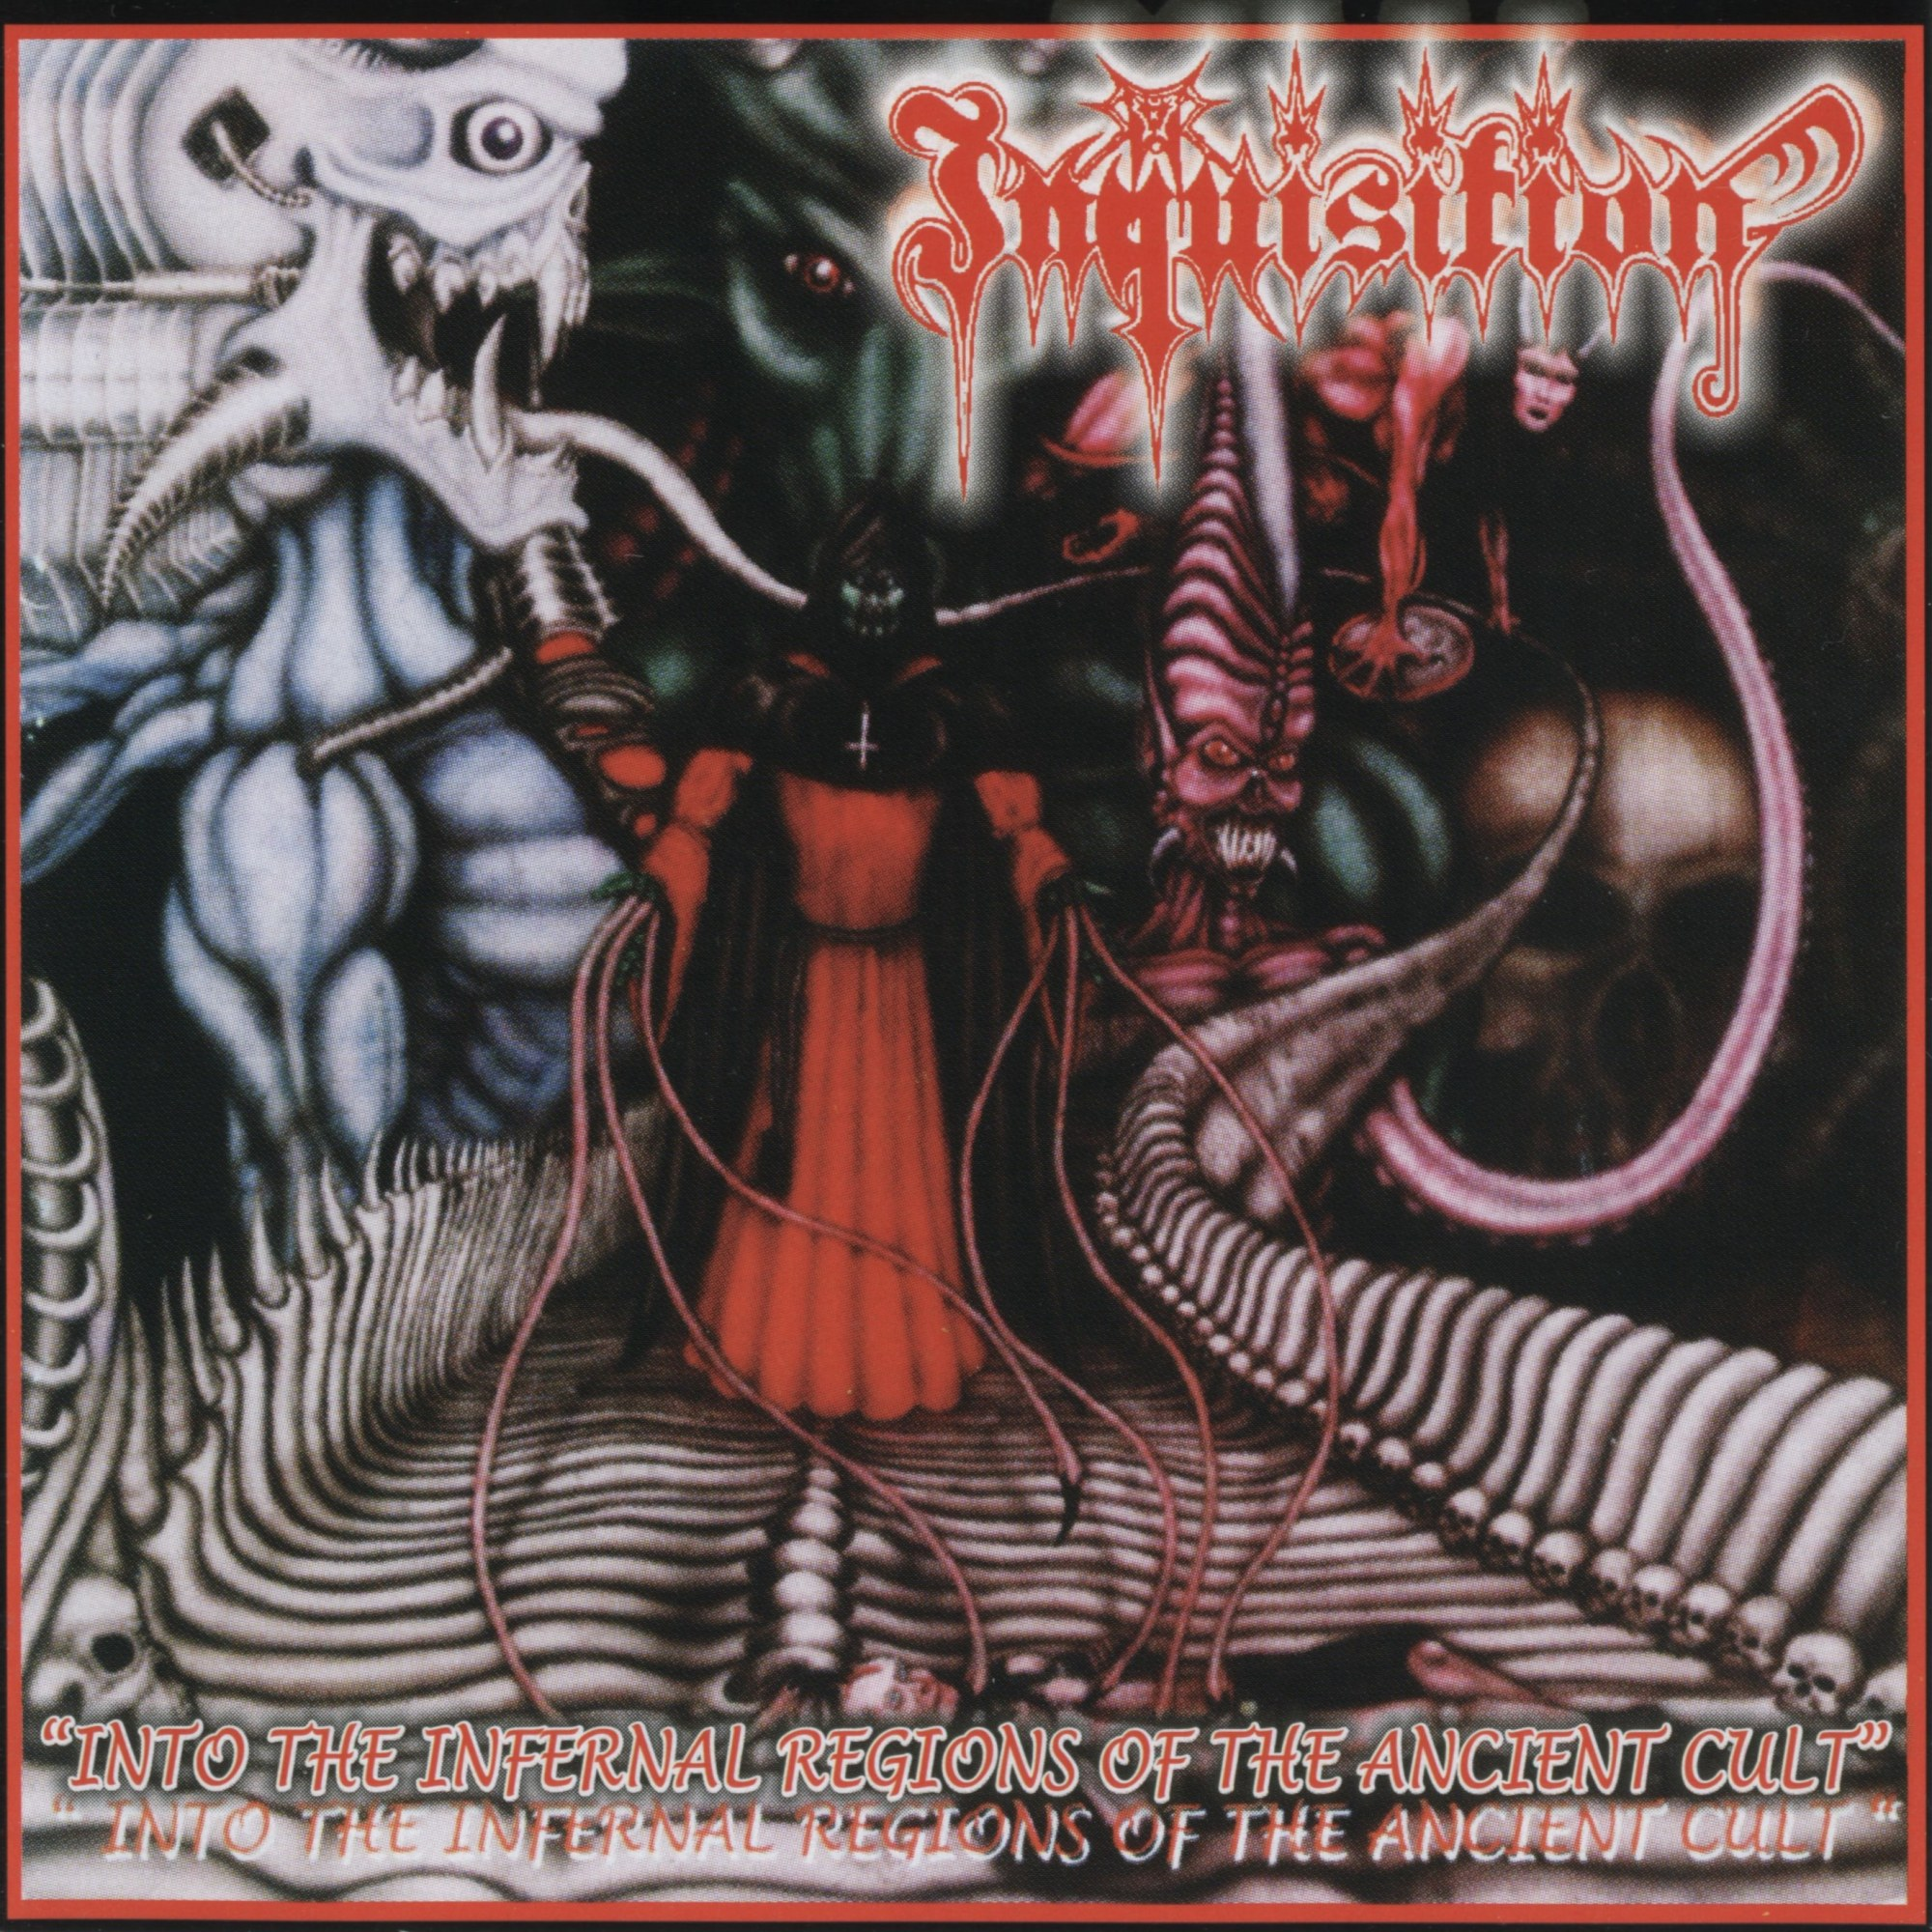 Review for Inquisition - Into the Infernal Regions of the Ancient Cult